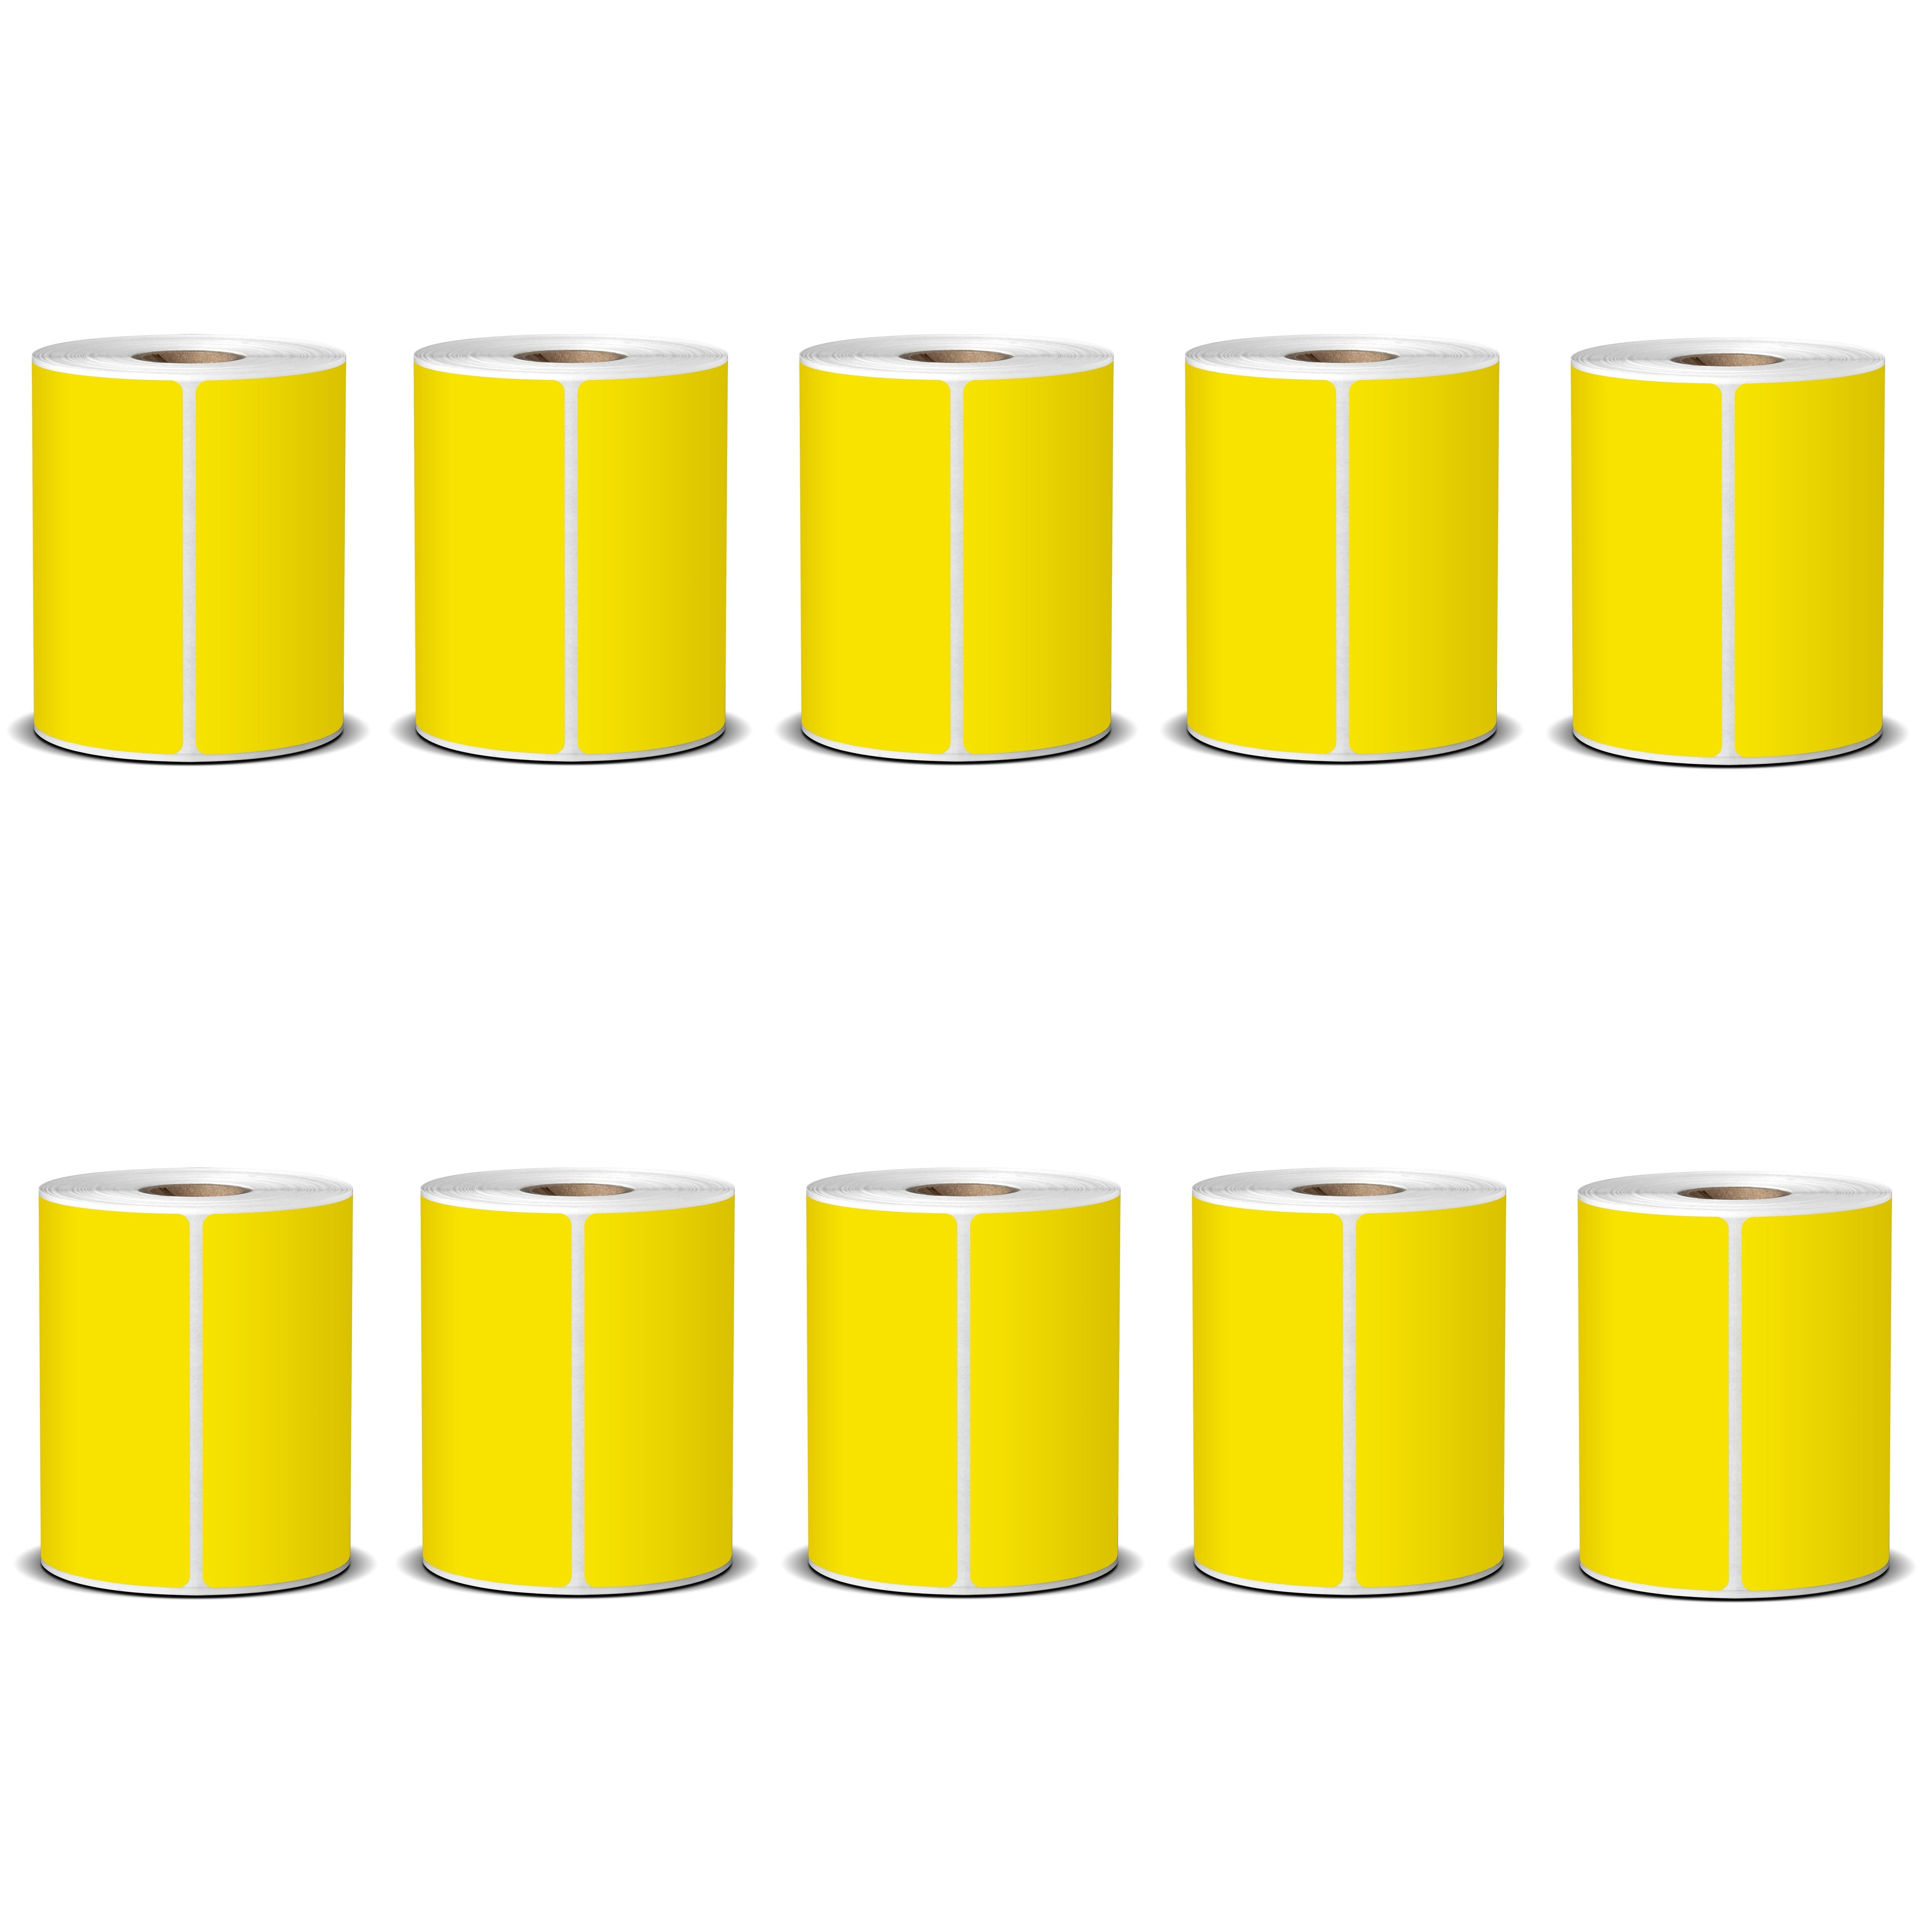 100X150 Yellow Direct Thermal Labels 400/Roll - 10 Rolls